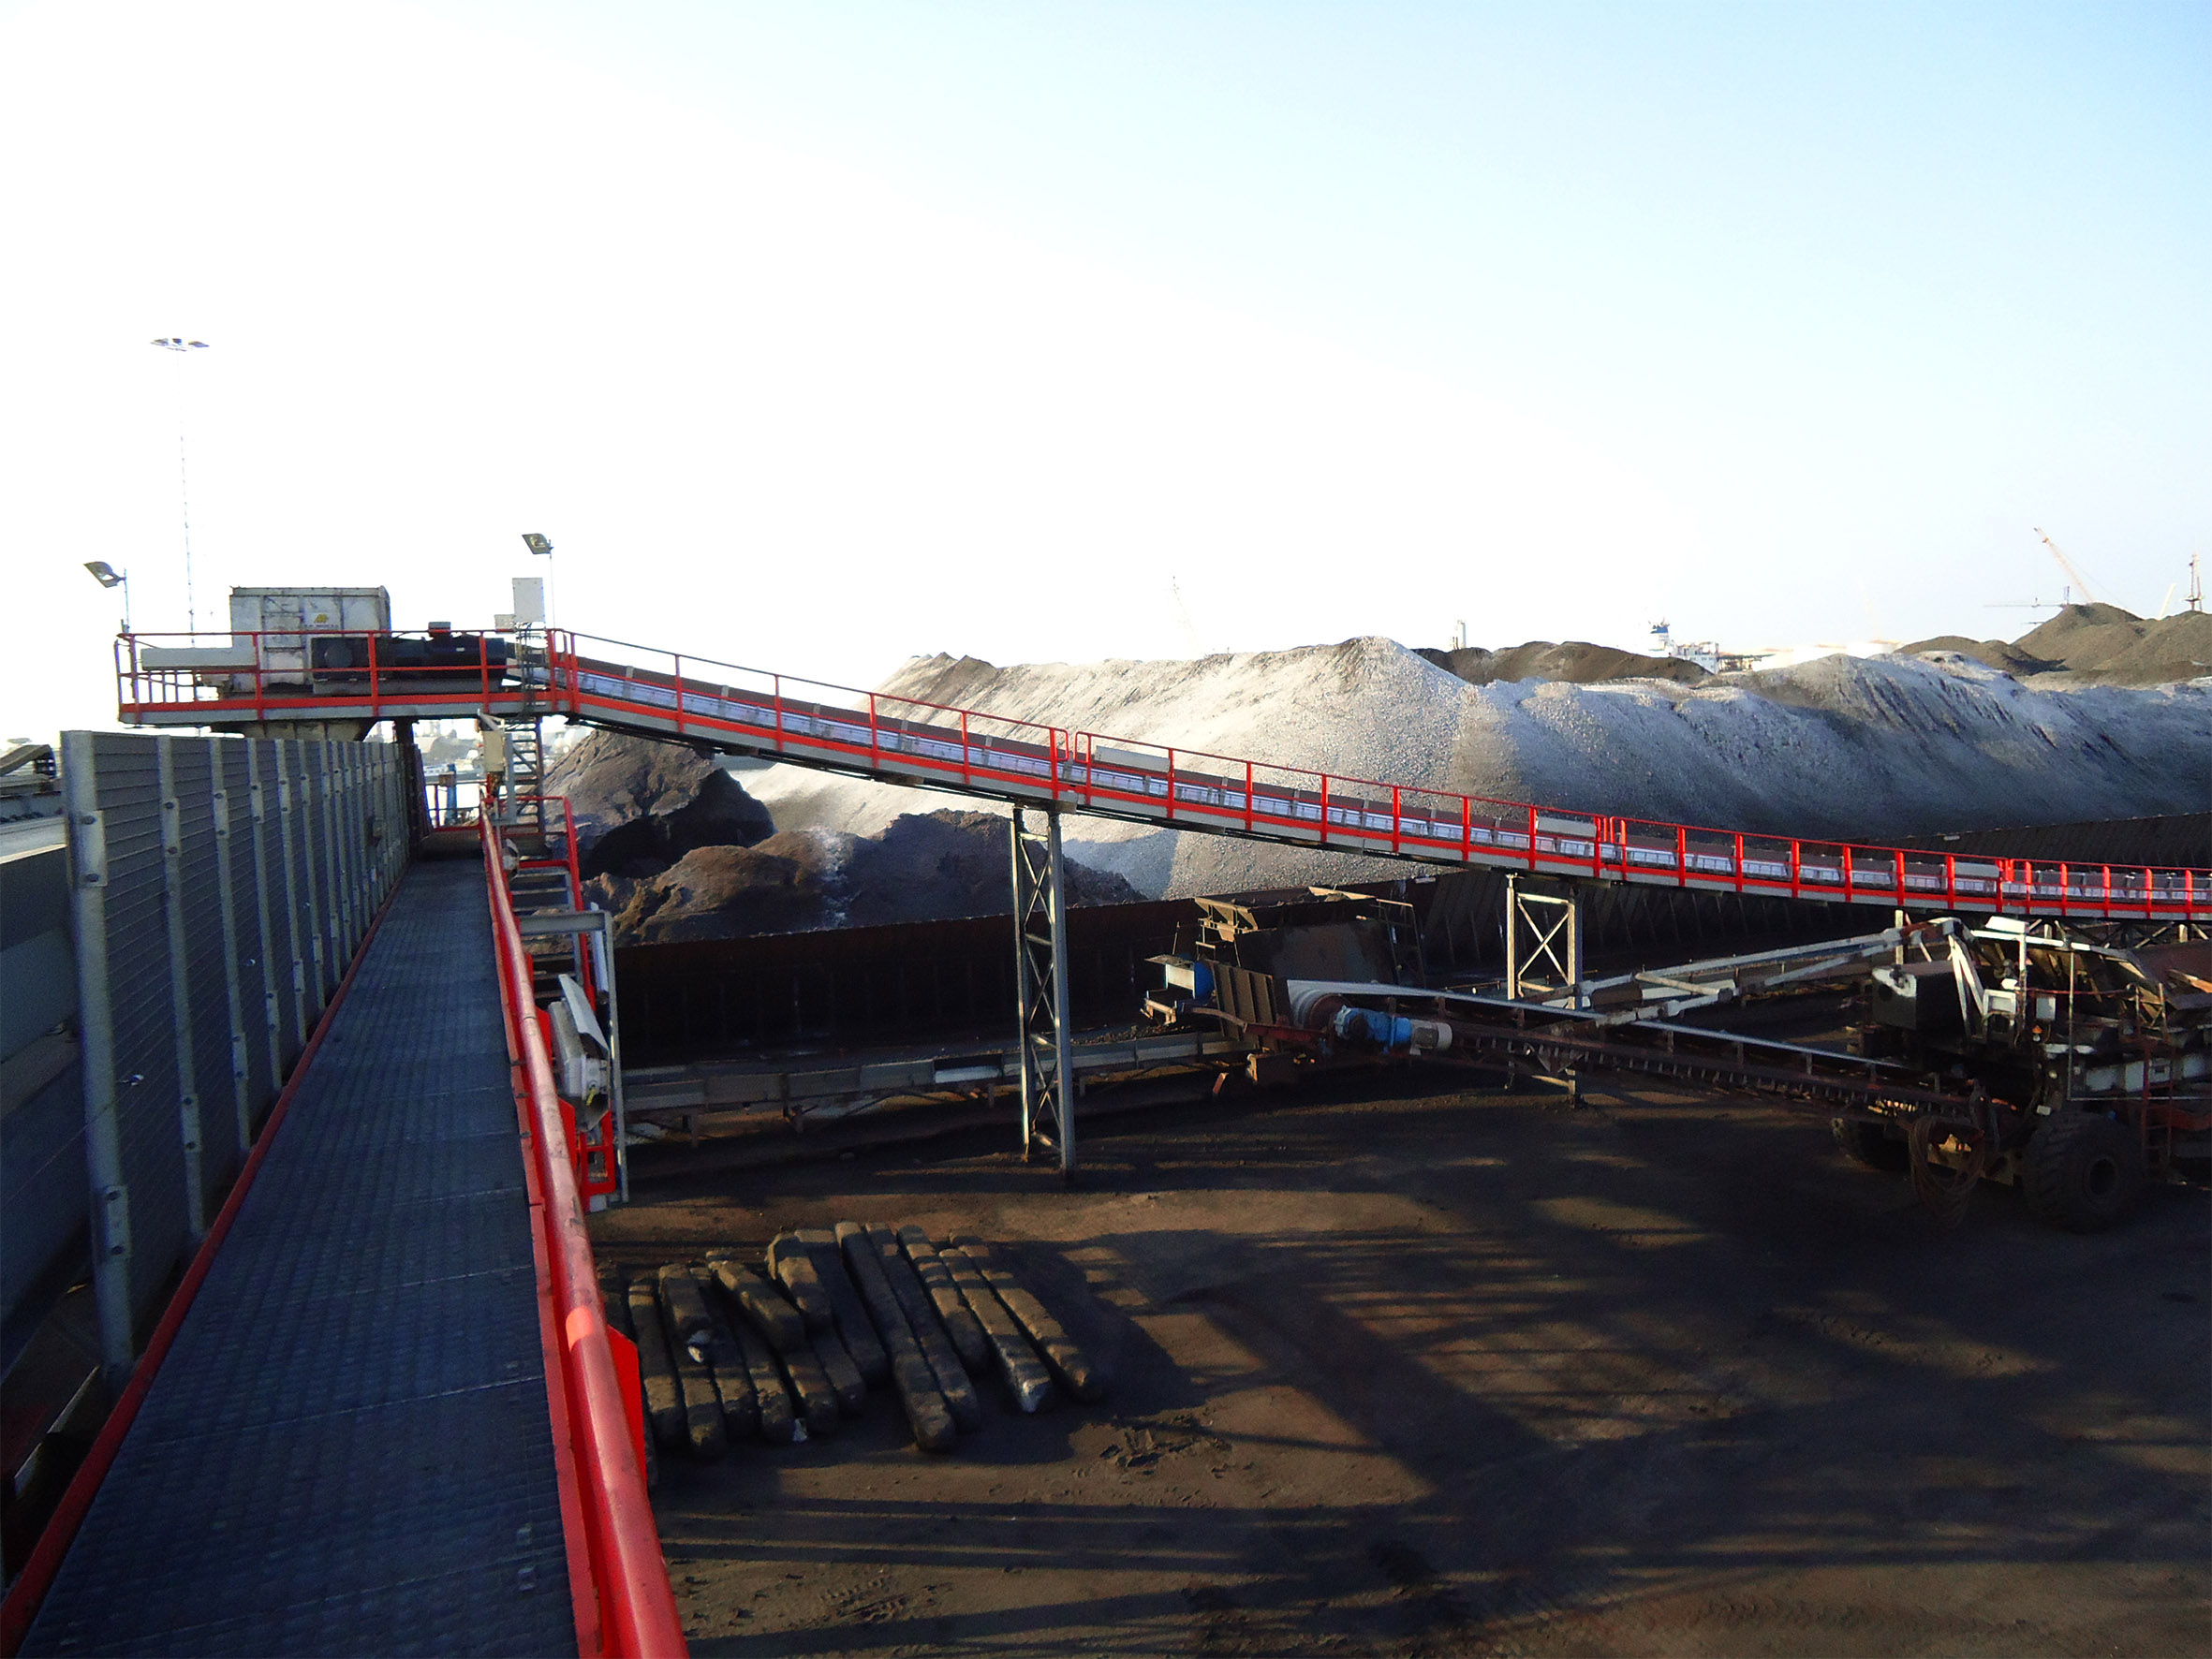 Transhipment conveyors and bunkers for coal terminal